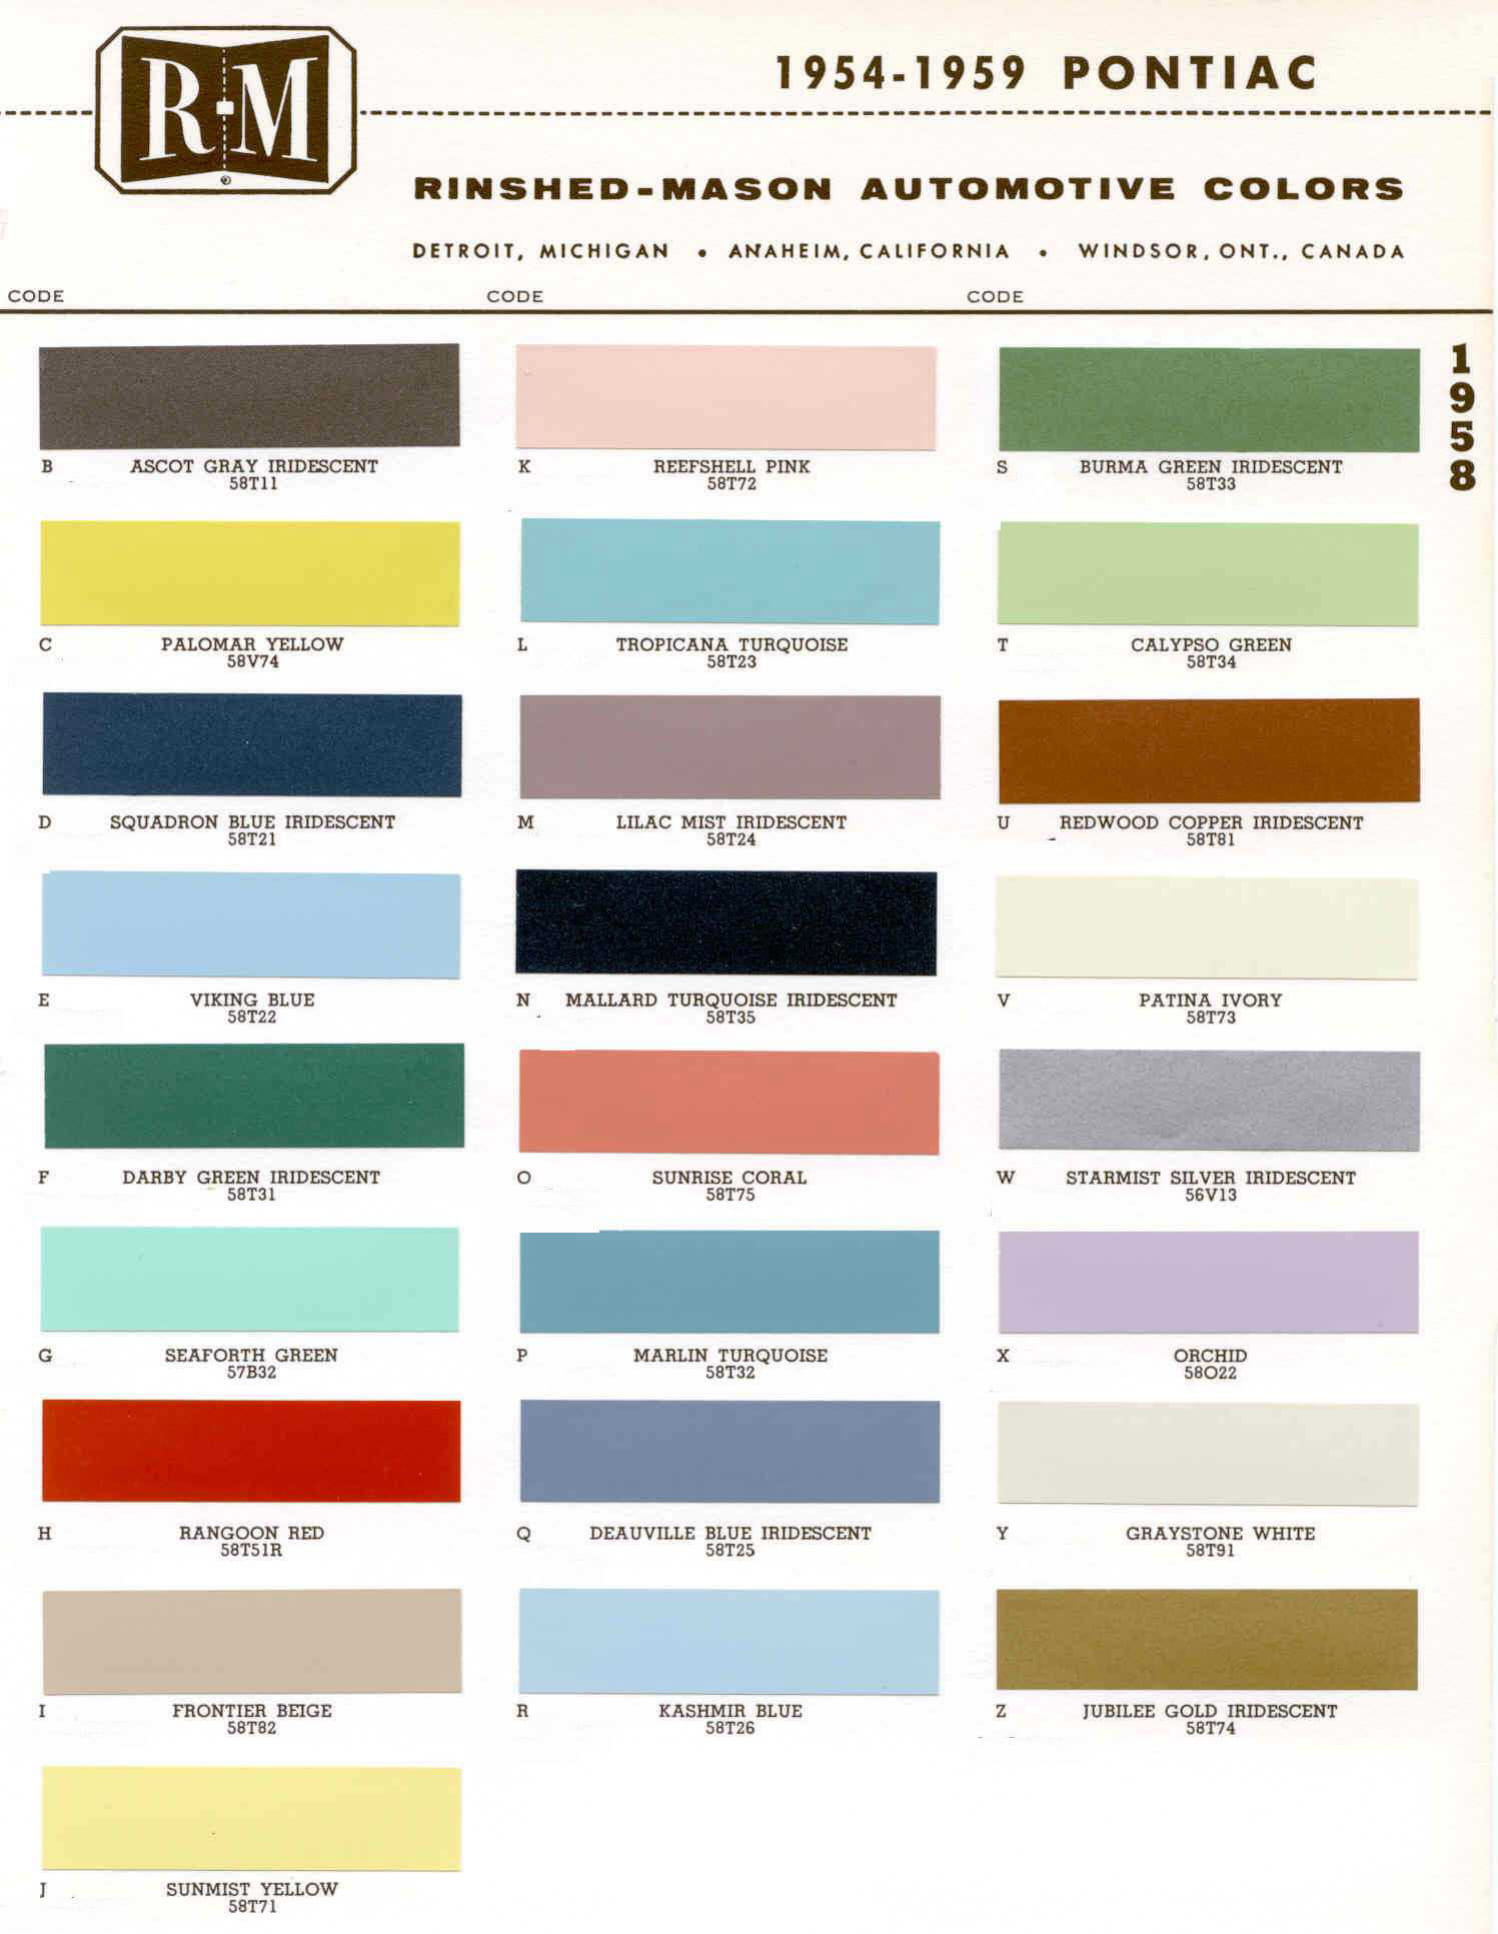 Color Code and Paint Color Chart for Pontiac for 1954-1959